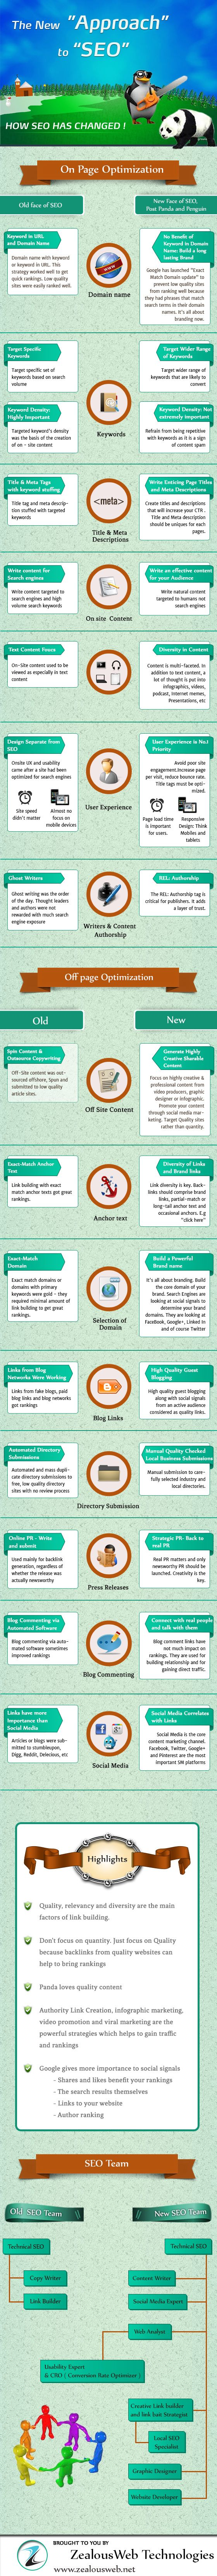 This infographic by ZealousWeb demonstrates the old vs. new approaches to SEO. It emphasises the inventive input required to be successful in SEO and